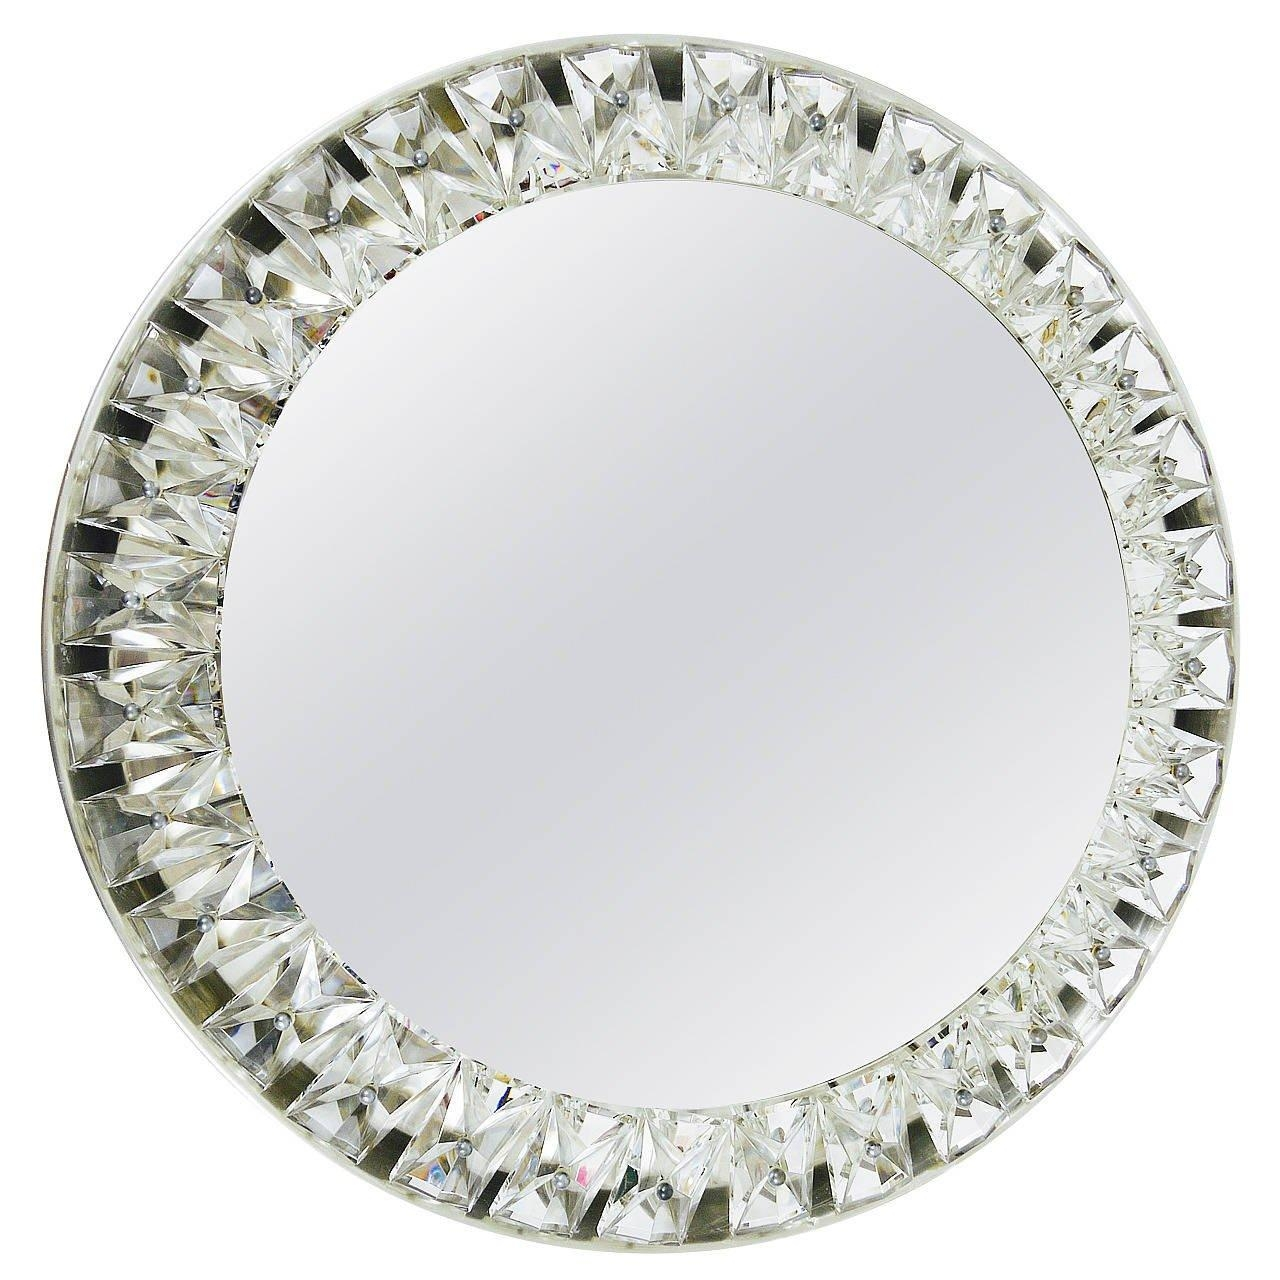 Big Round Bakalowits Backlit Wall Mirror With Huge Crystals For Mirror With Crystals (Image 5 of 20)